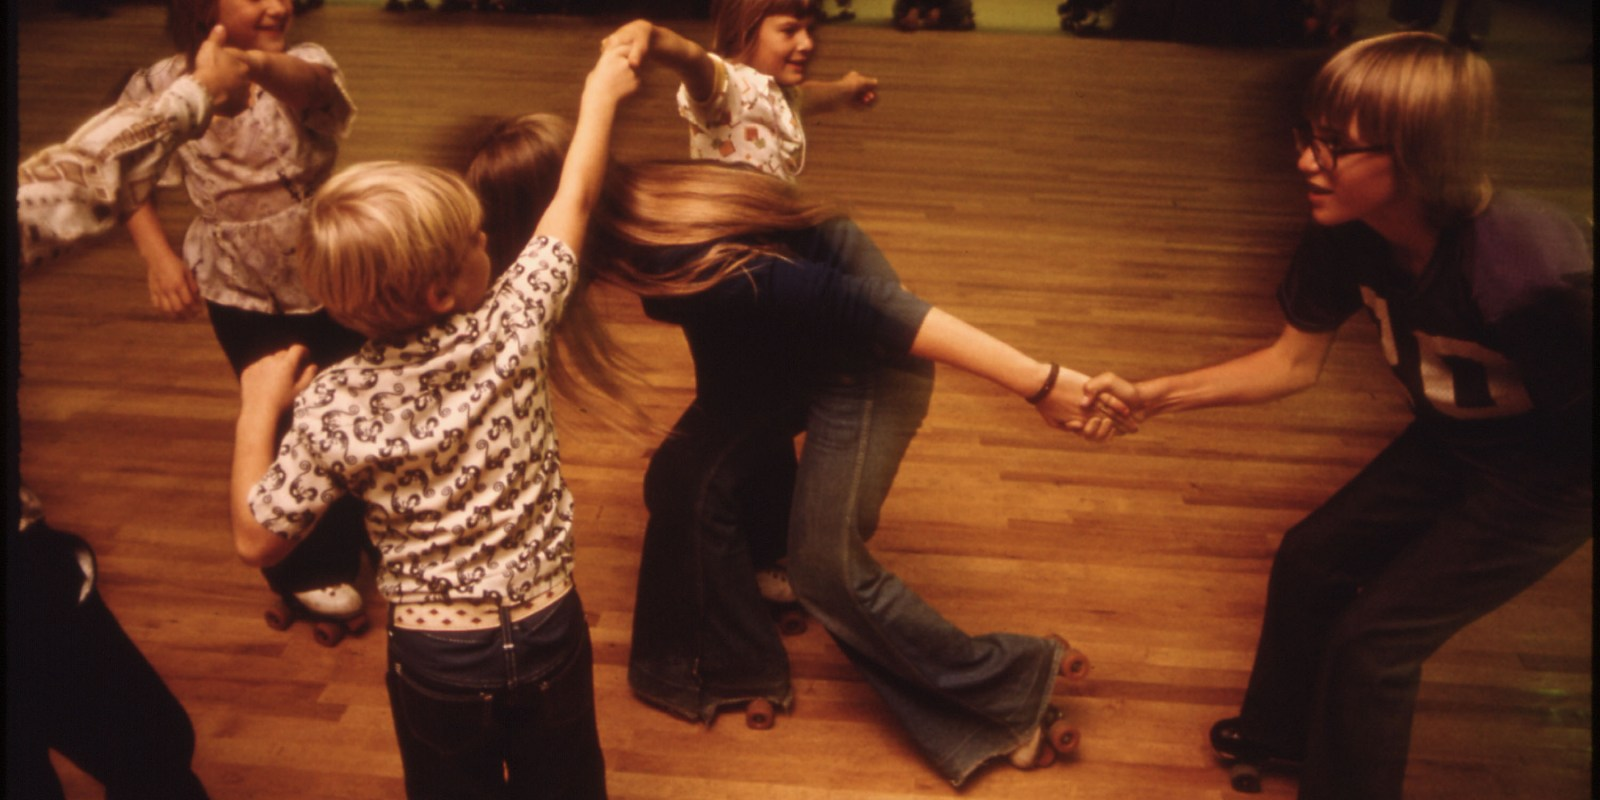 Vintage Roller Skating Pics from 1975